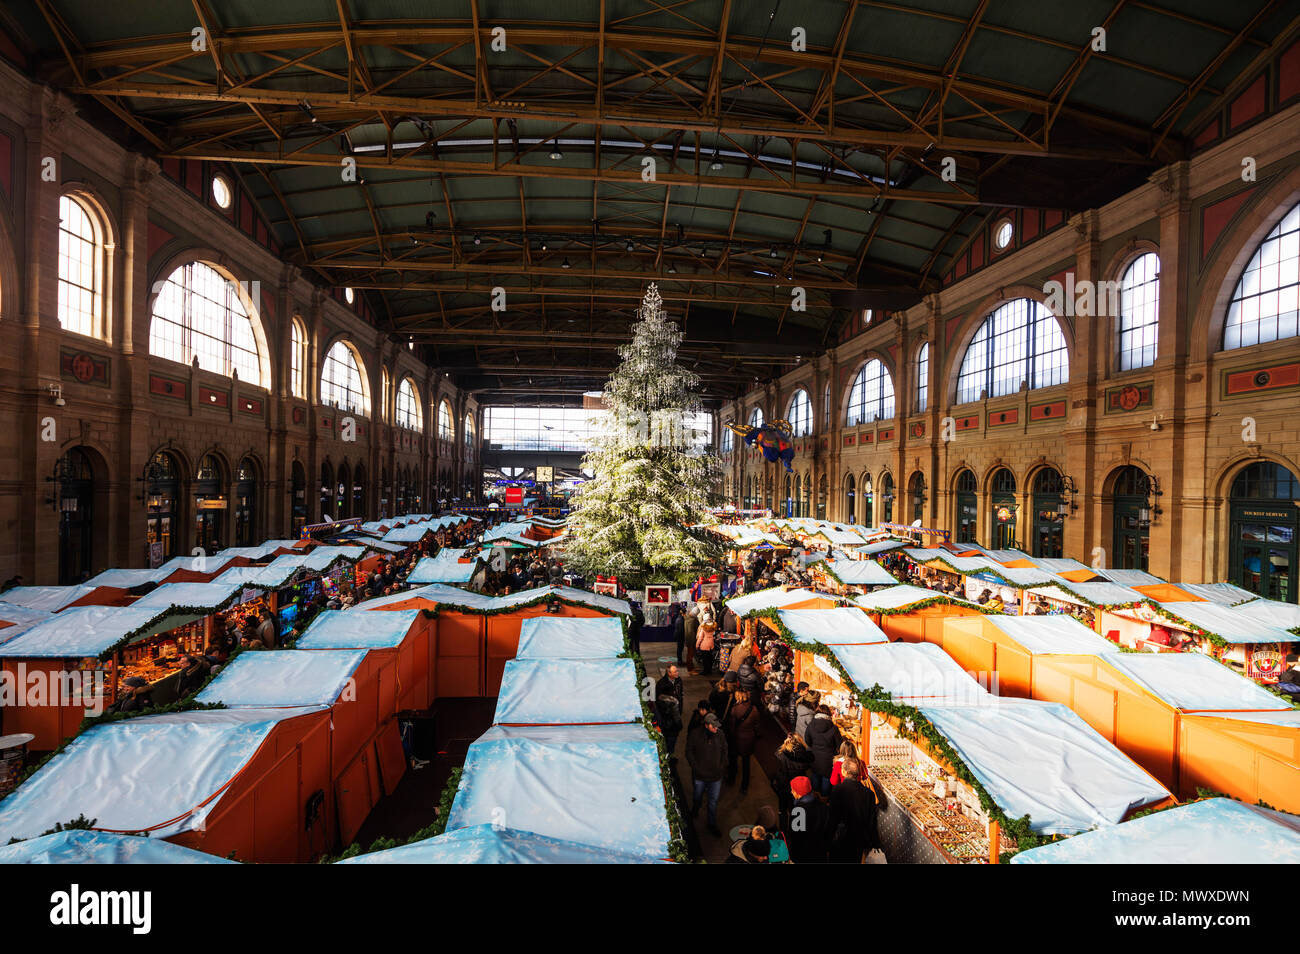 Christmas market at Zurich train station, Zurich, Switzerland, Europe - Stock Image